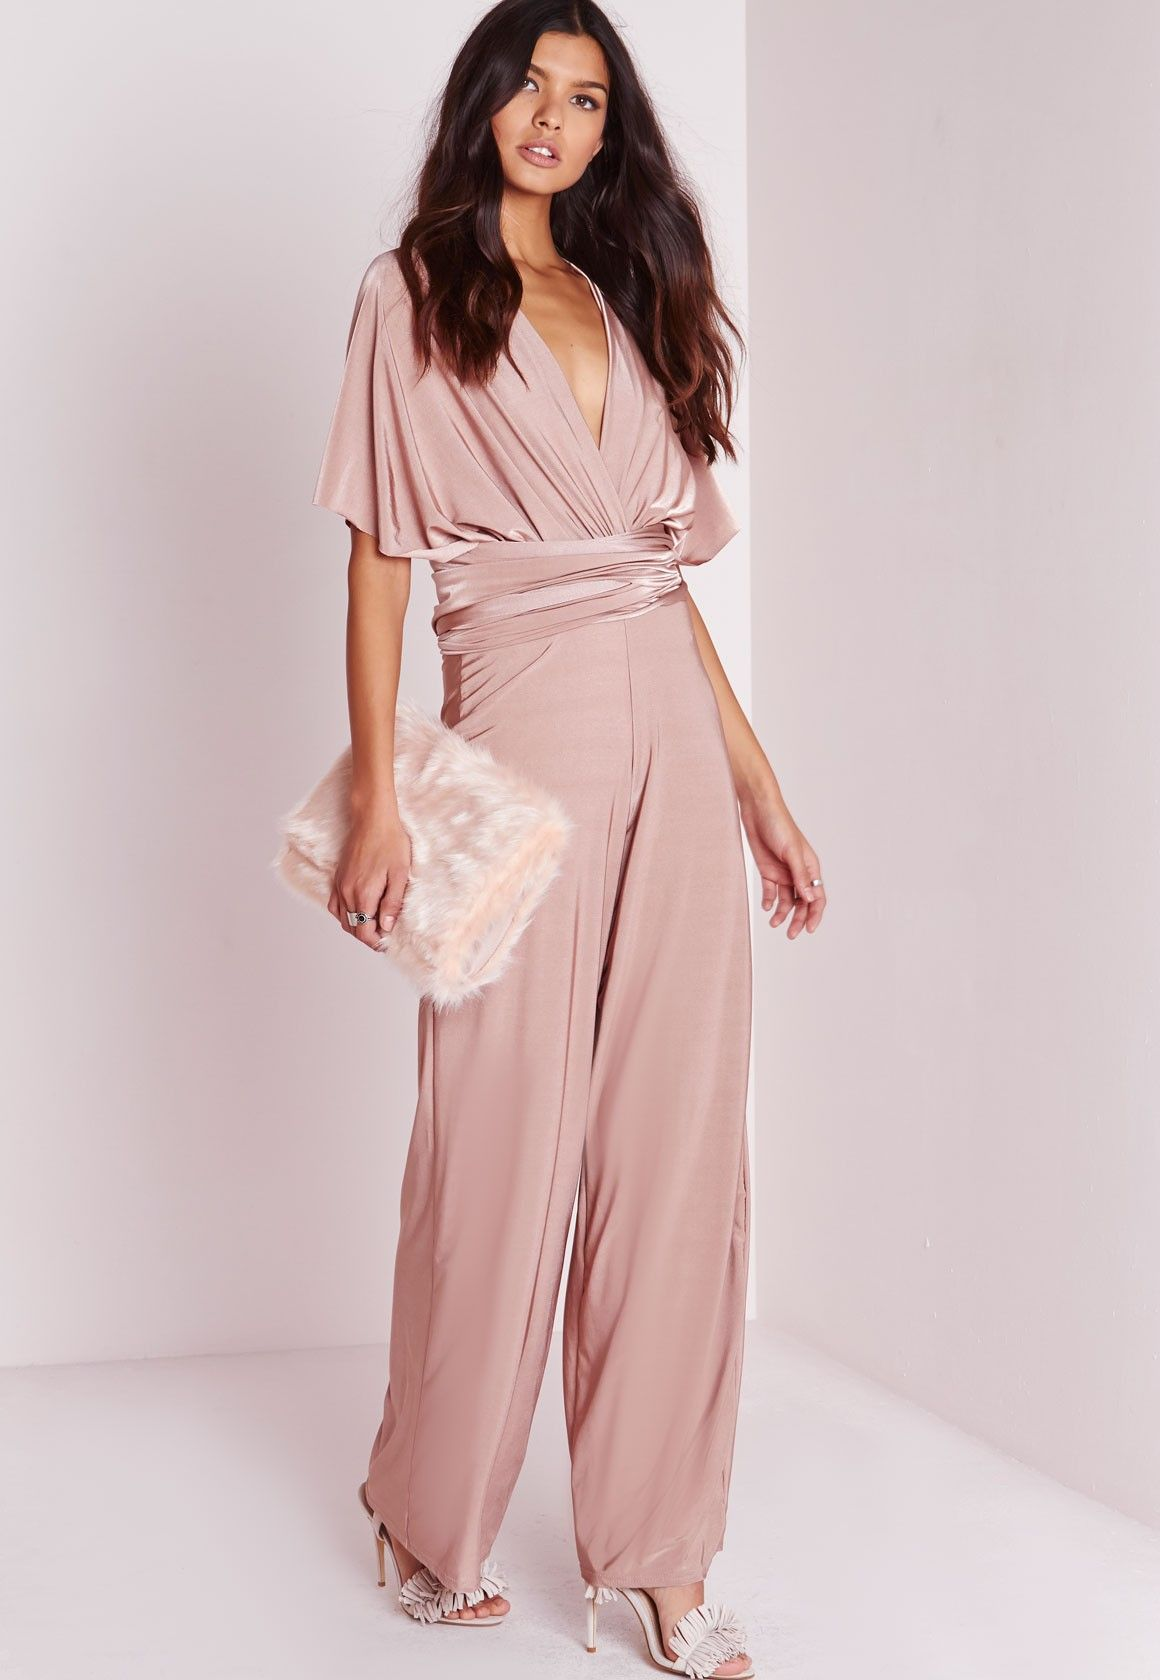 Do It Anyway Multiway Slinky Jumpsuit Pink | Pinterest | Plantas y Ropa